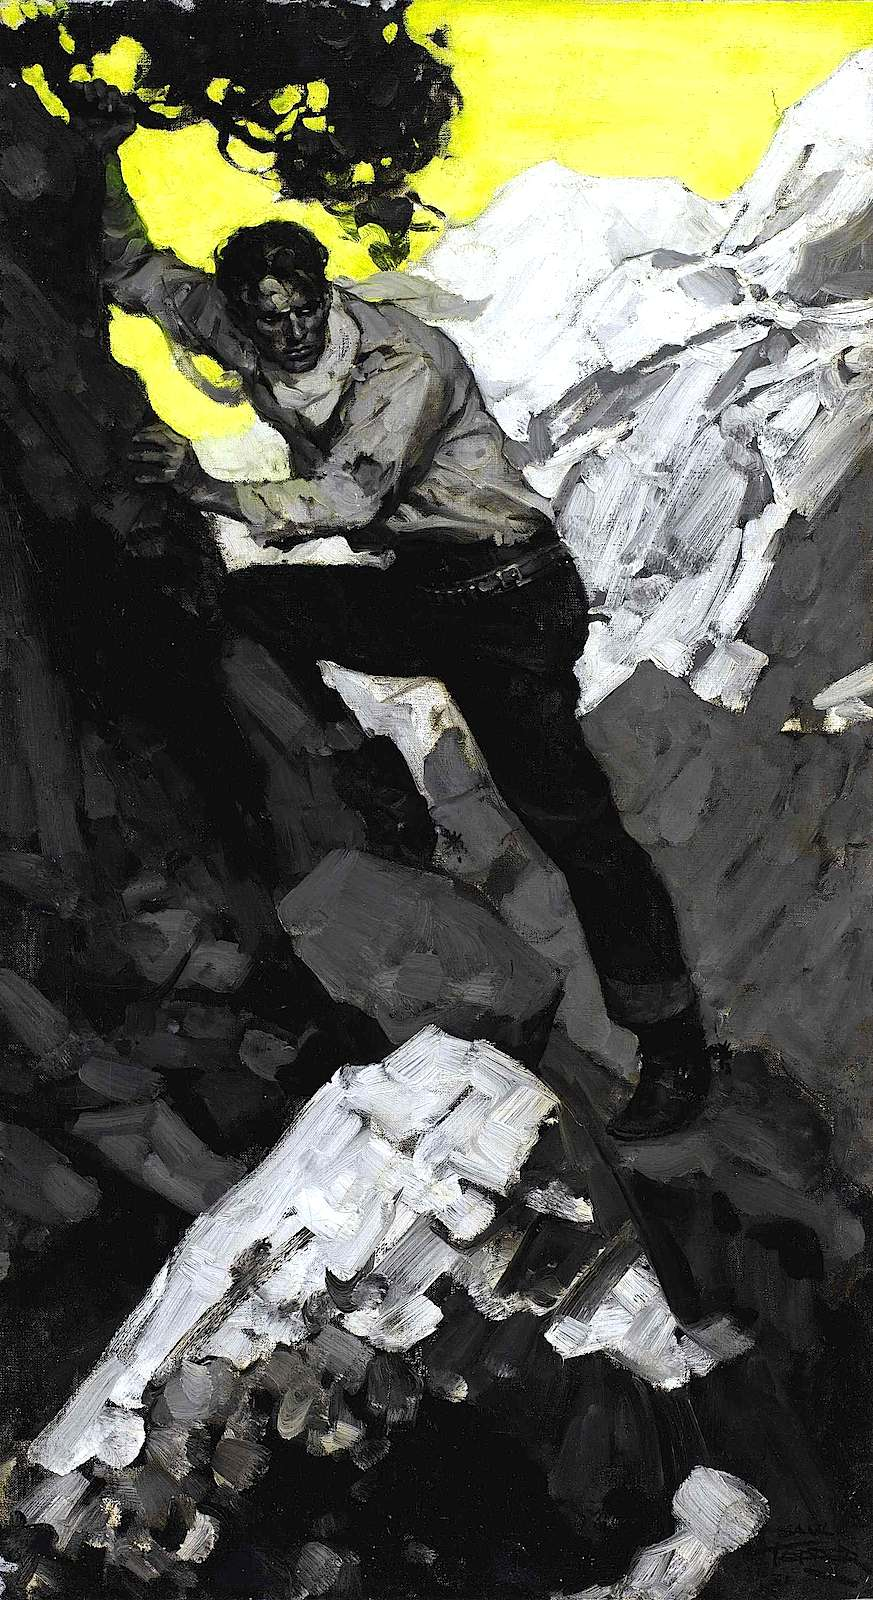 Saul Tepper magazine illustration of a climbing man